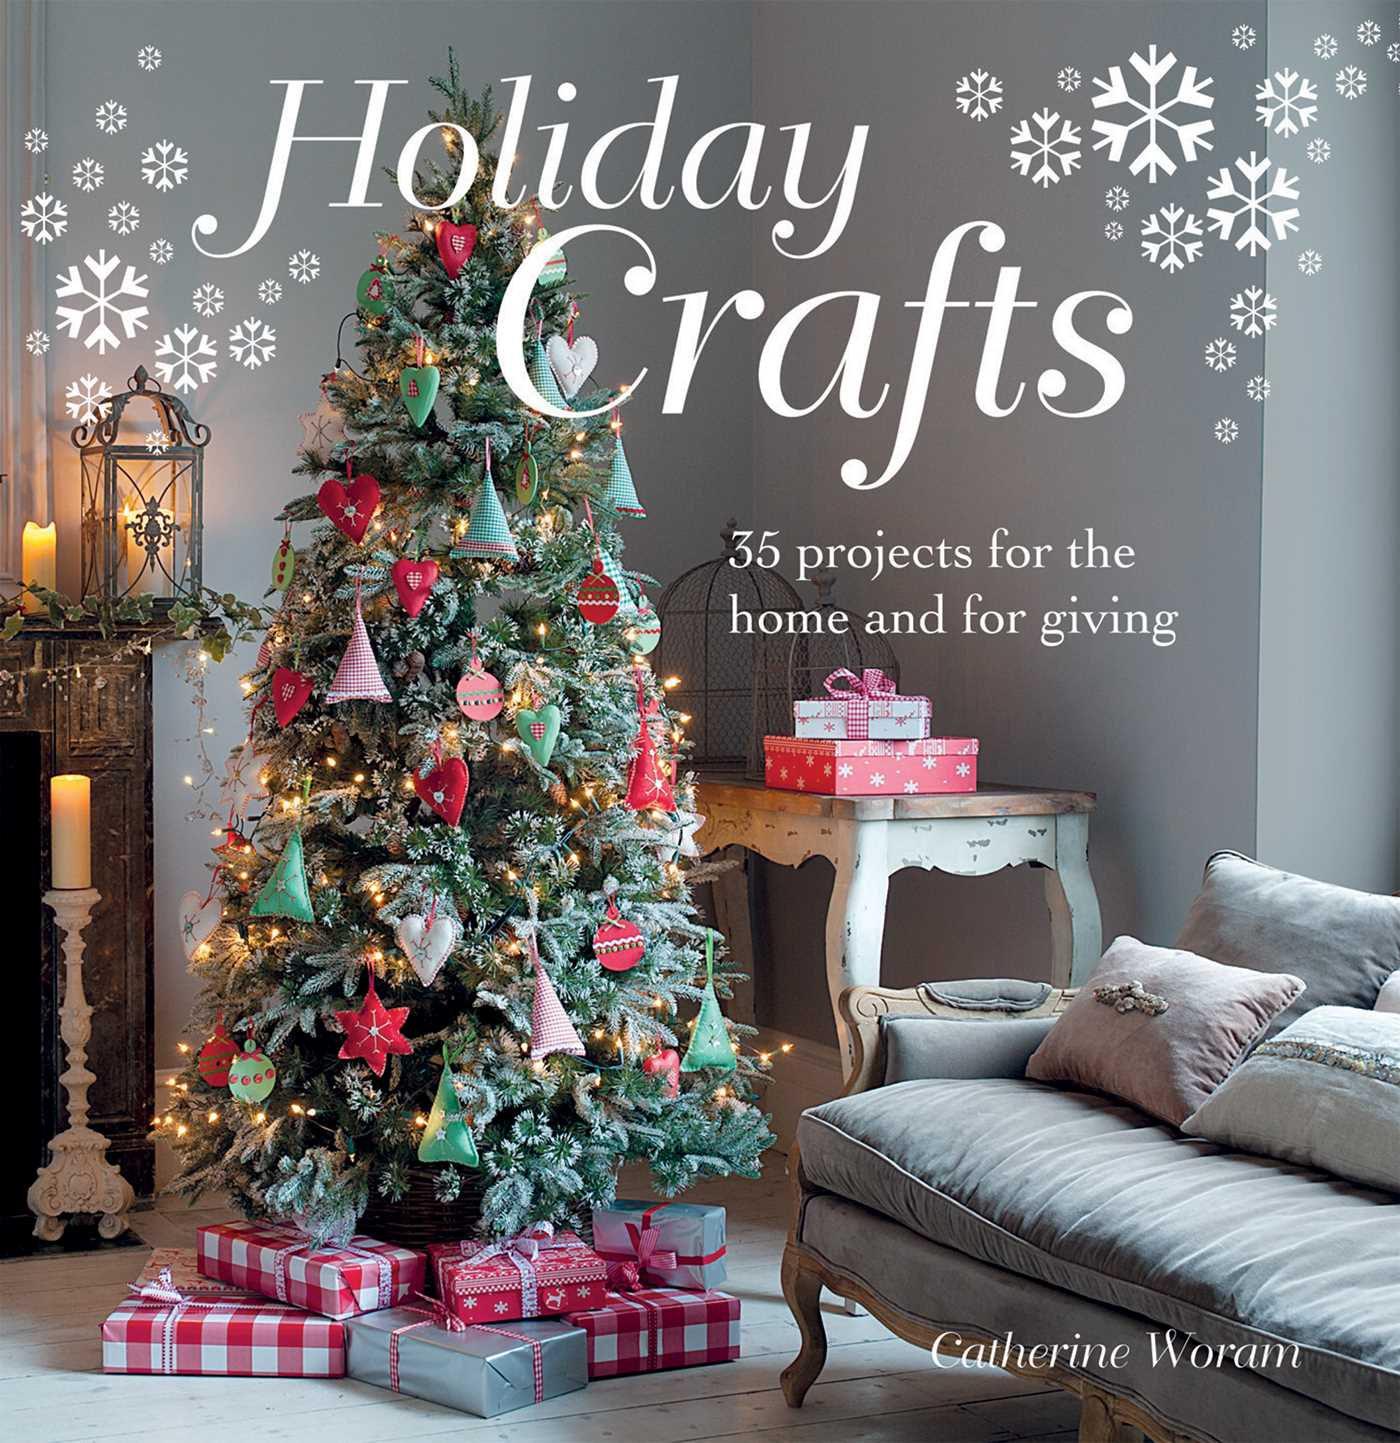 Holiday Crafts : 35 projects for the home and for giving